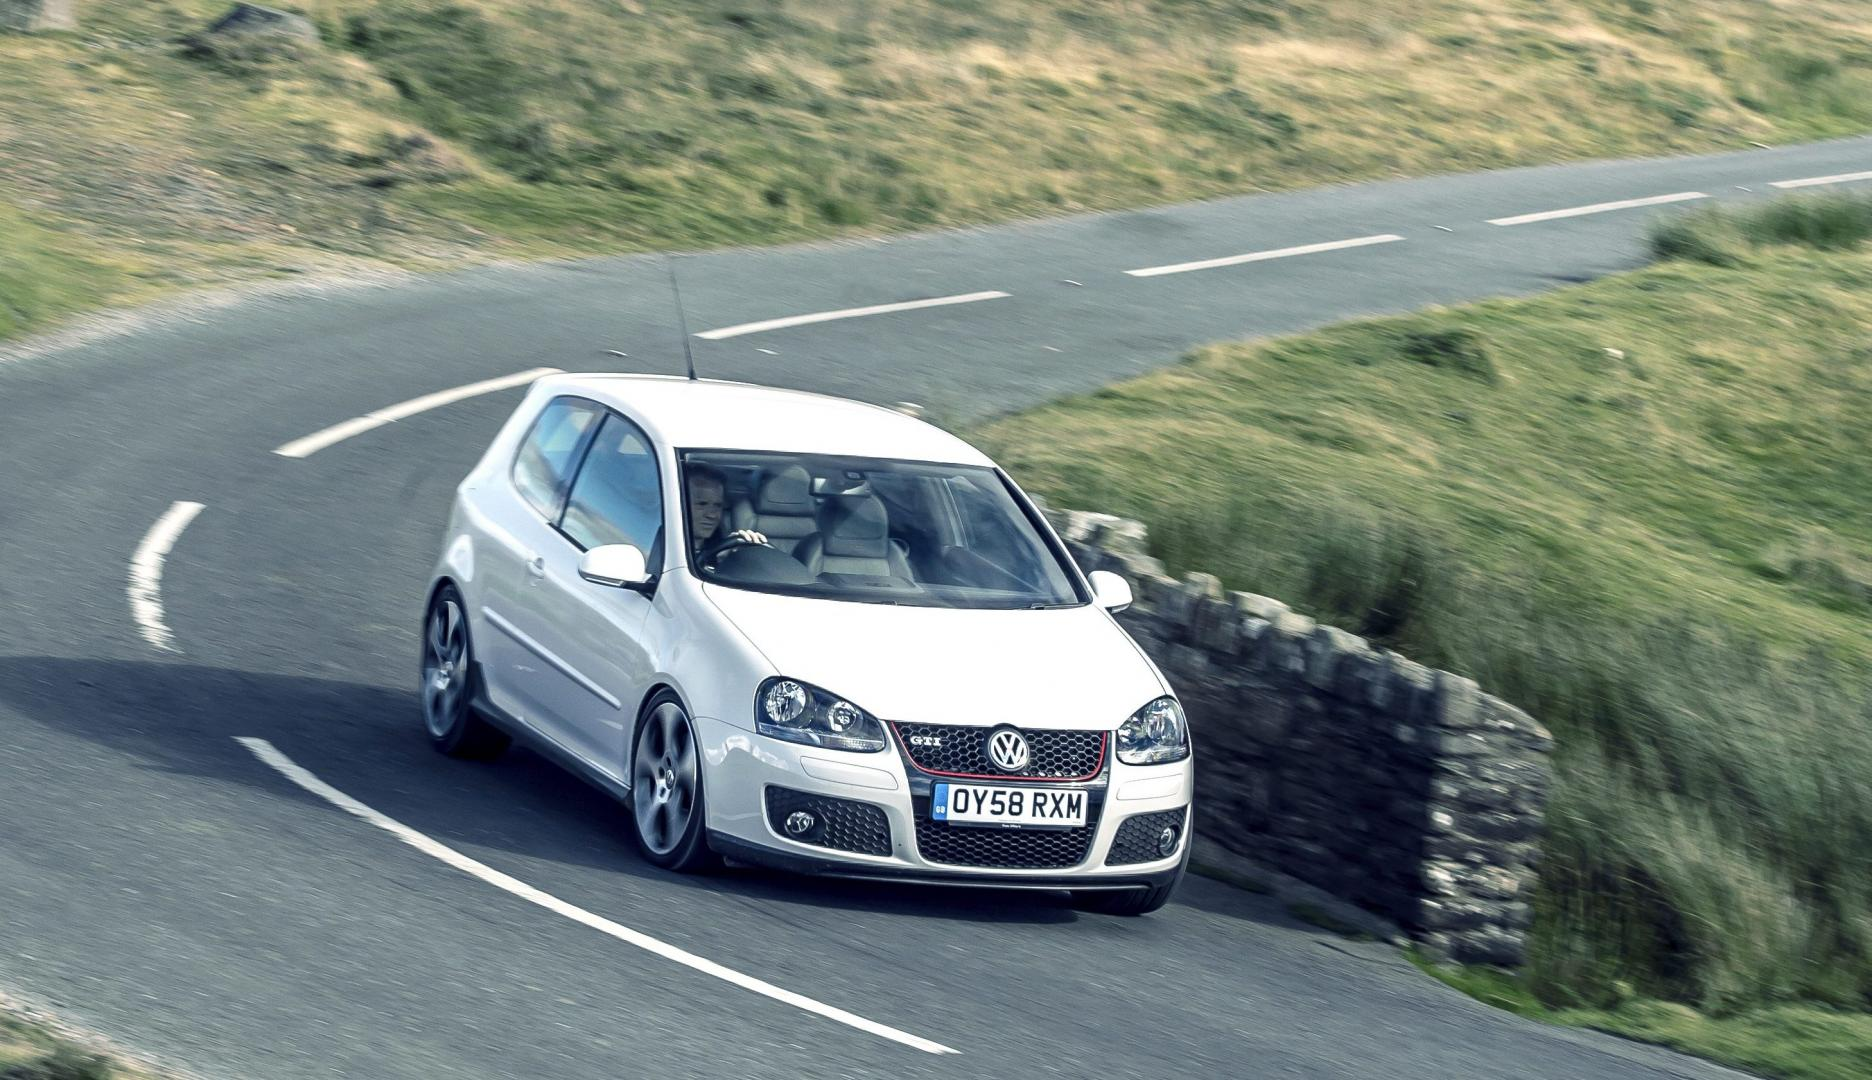 tweedehands Golf V GTI auto de beste hot hatches volkswagen golf 5 gti